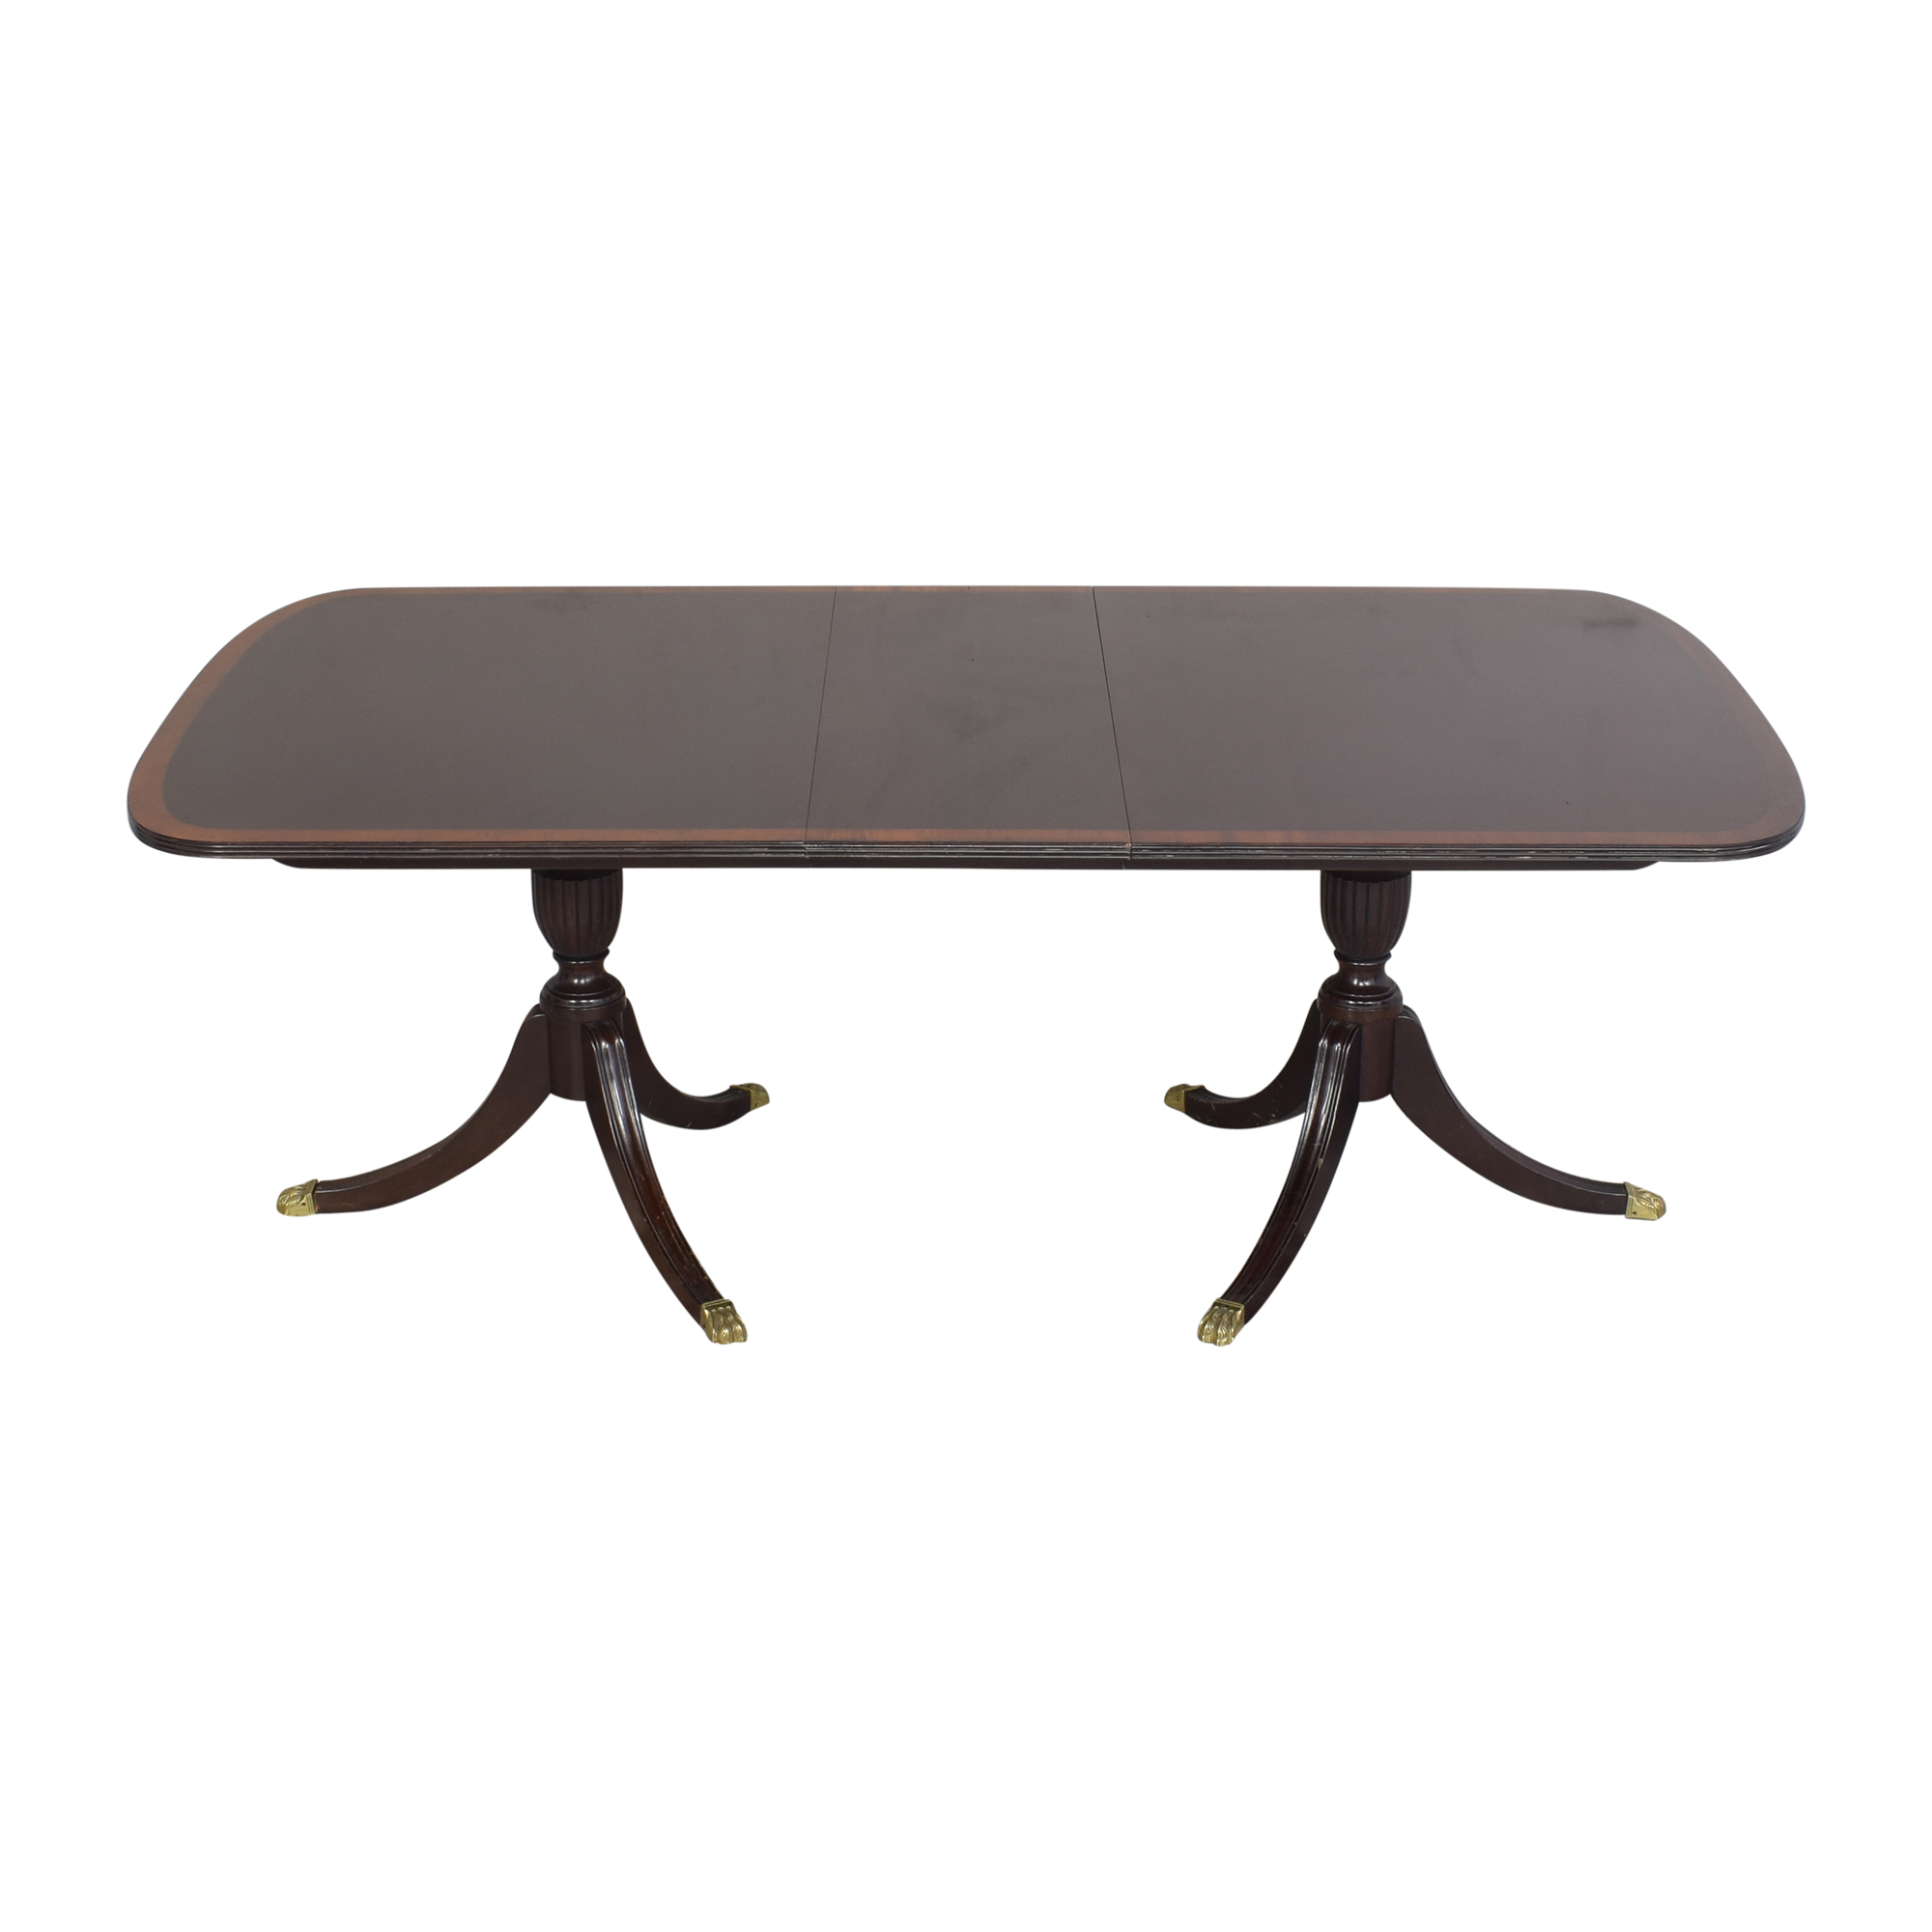 Stickley Furniture Extendable Double Pedestal Dining Table / Dinner Tables